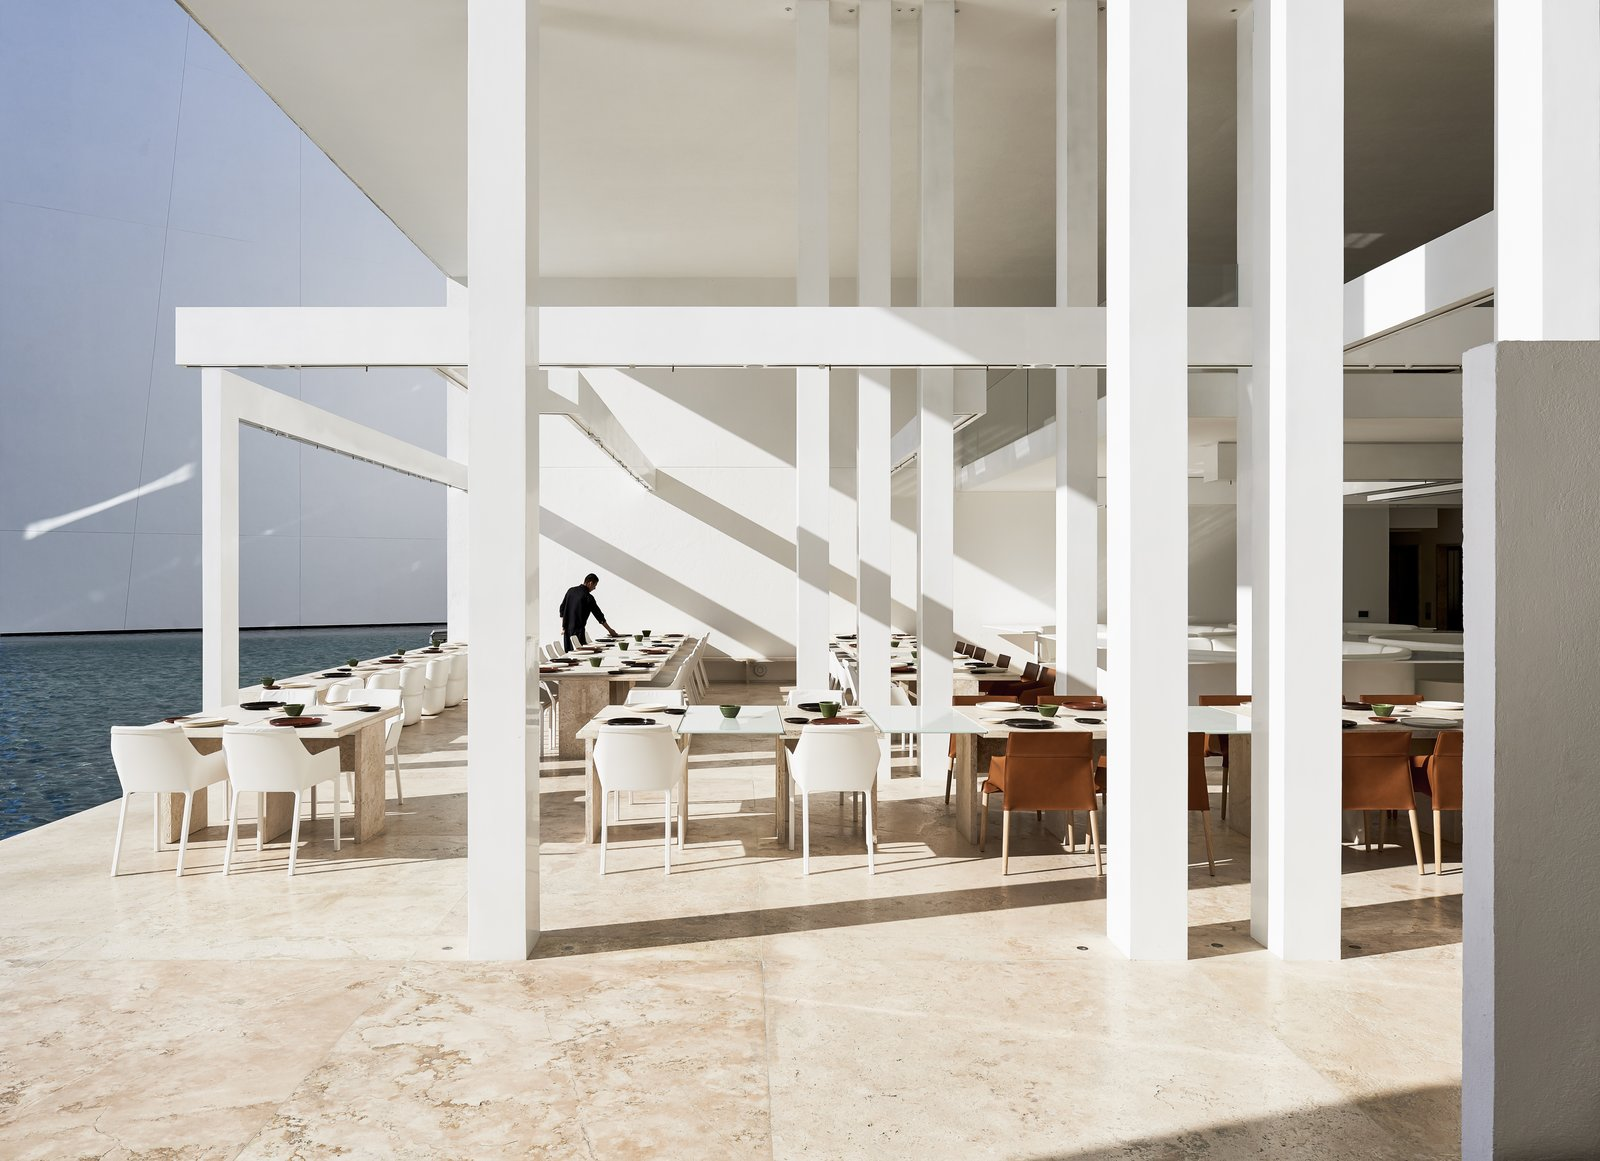 With white travertine floors and muted, modern furnishings by Poliform, this restaurant at the resort is all about the view of the ocean and the sensoral connectivity to it. Tagged: Desert, Large Patio, Porch, Deck, Dining Room, Travertine Floor, Chair, and Table.  Photo 2 of 12 in An Exquisite Beach Resort on Baja California Sur Lies Where the Water Meets the Horizon